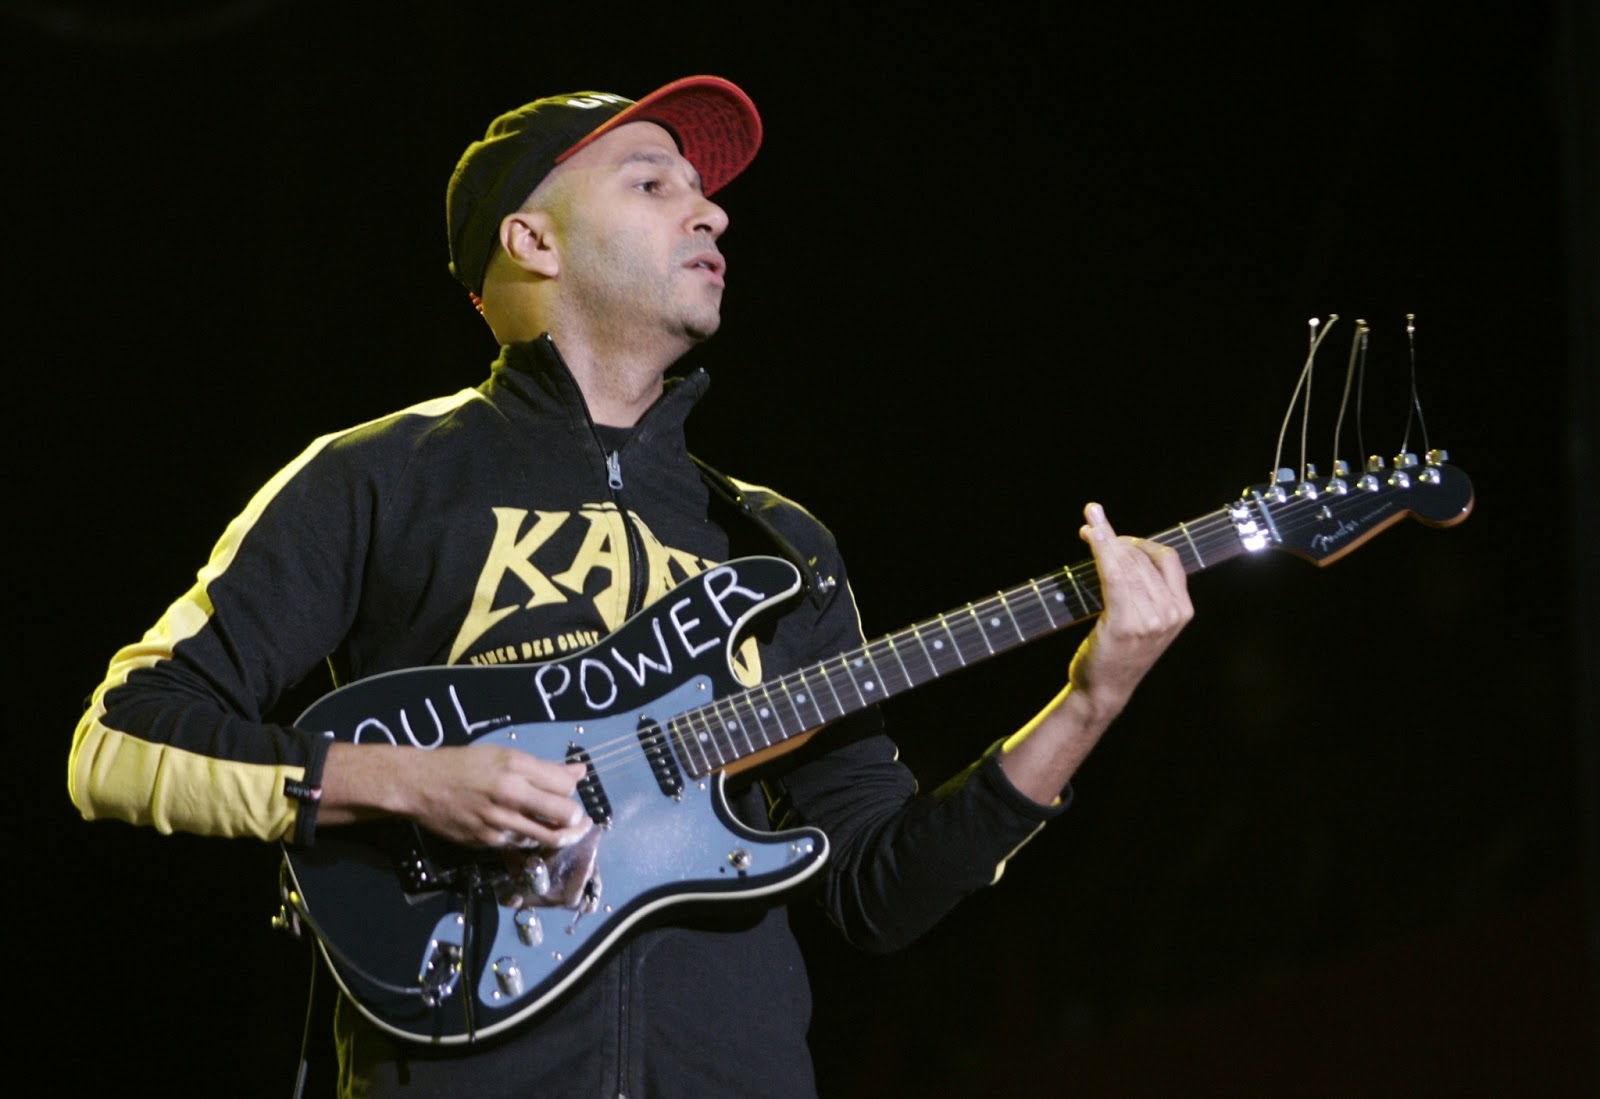 Wallpaper Worthy Guitar Pictures Page 22 The Gear PictureTom Morello Guitar Soul Power